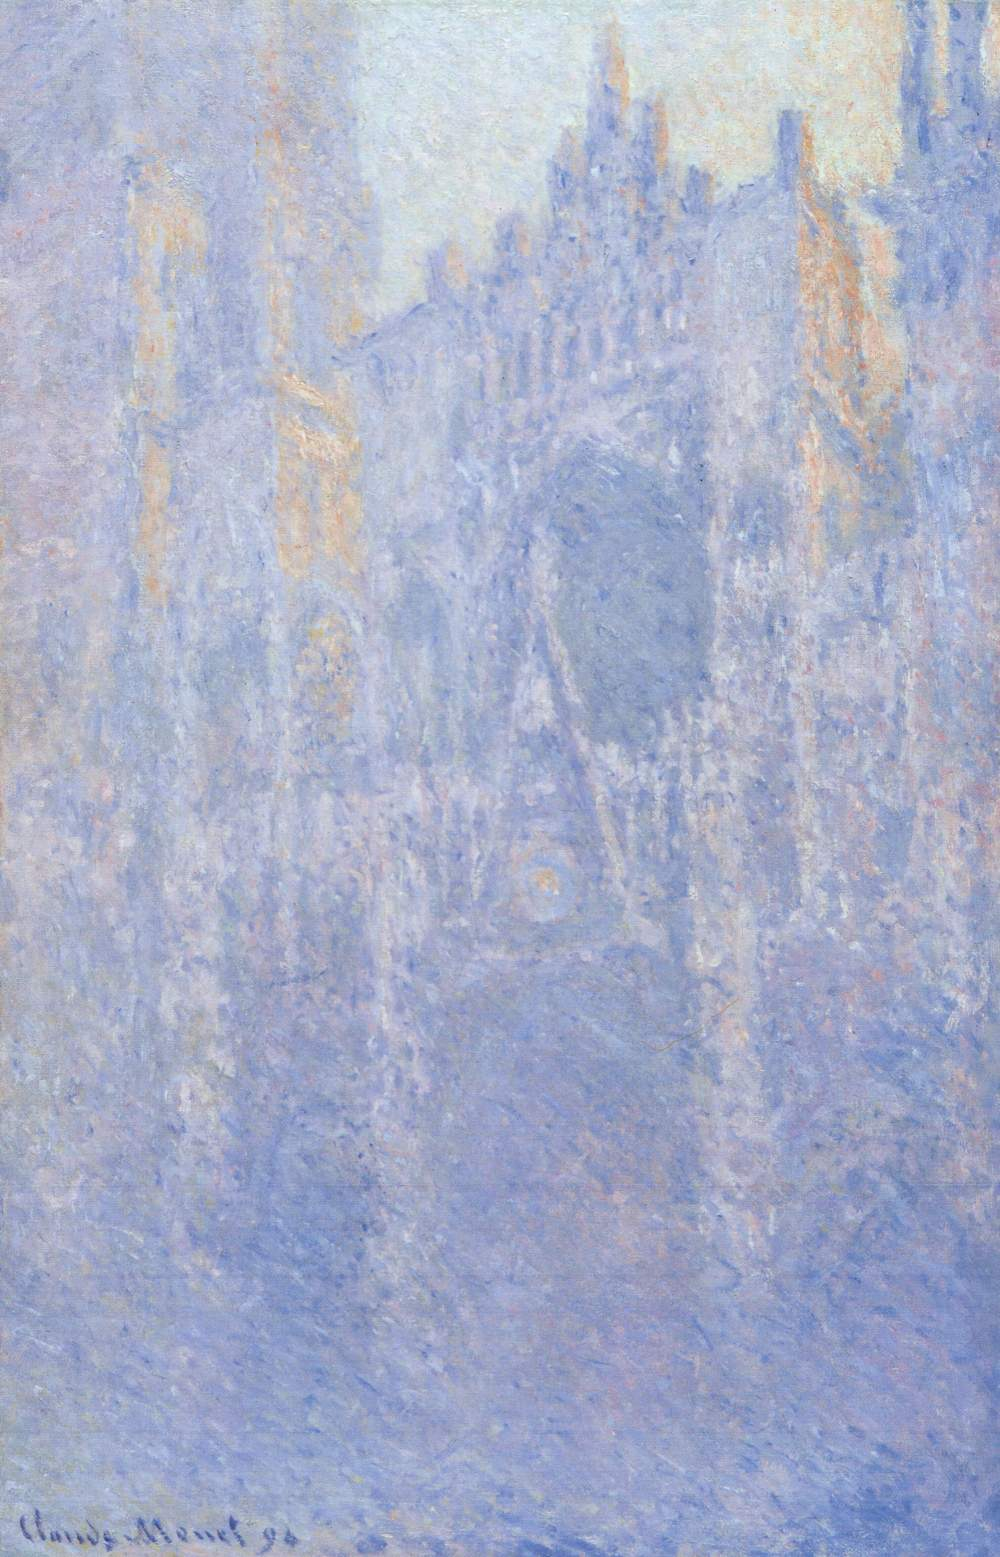 Claude_Monet_-_Rouen_Cathedral,_Facade_(Morning_effect)